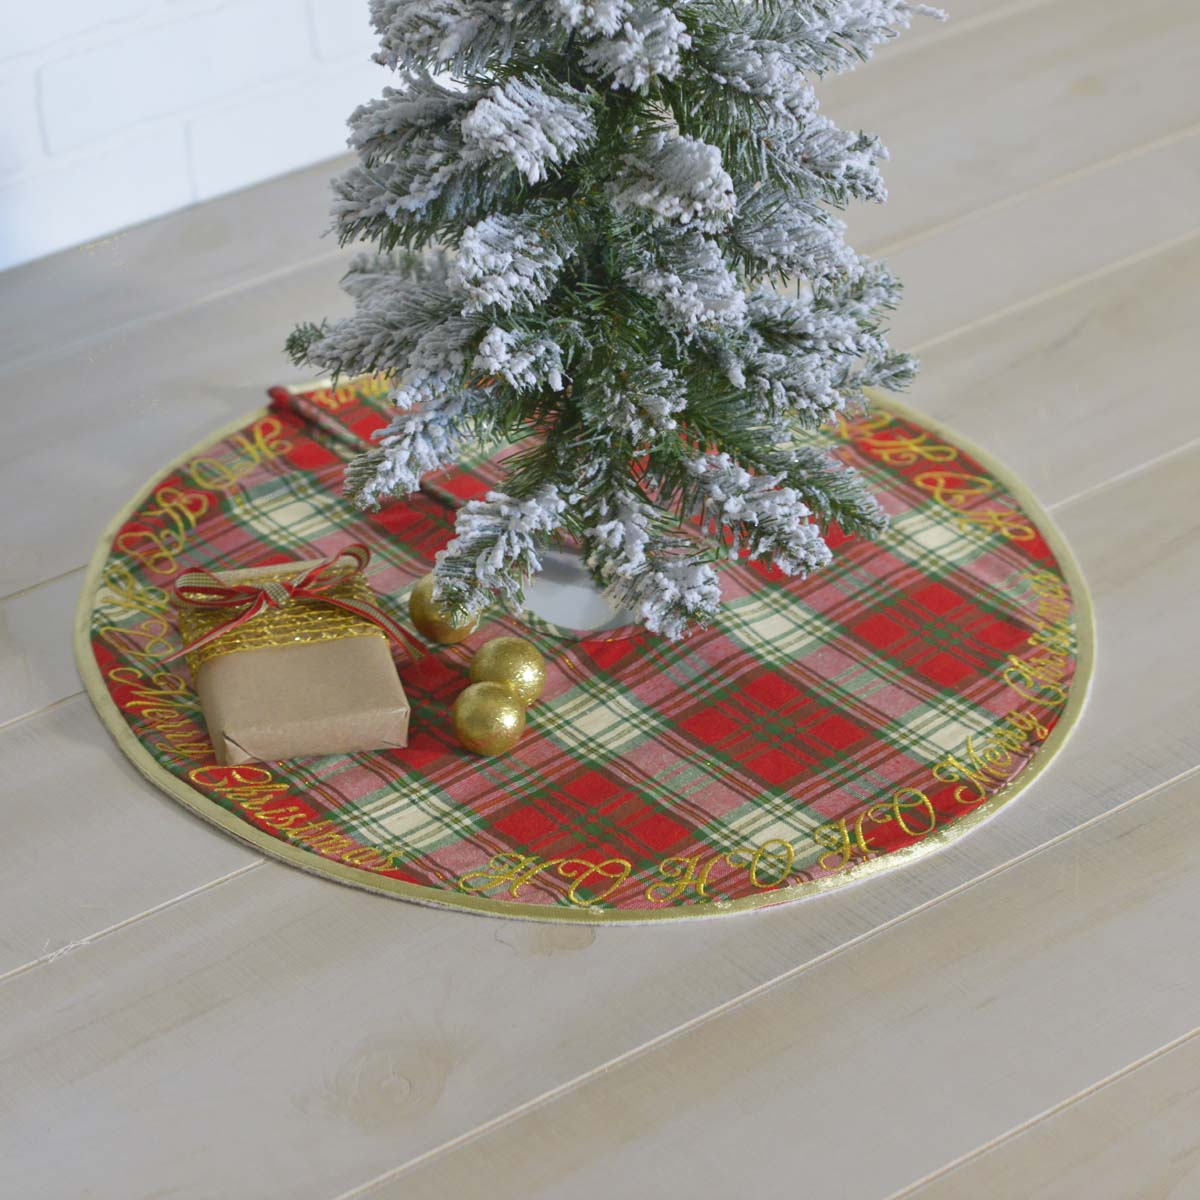 HO HO Holiday Mini Tree Skirt 21 - Woodrol